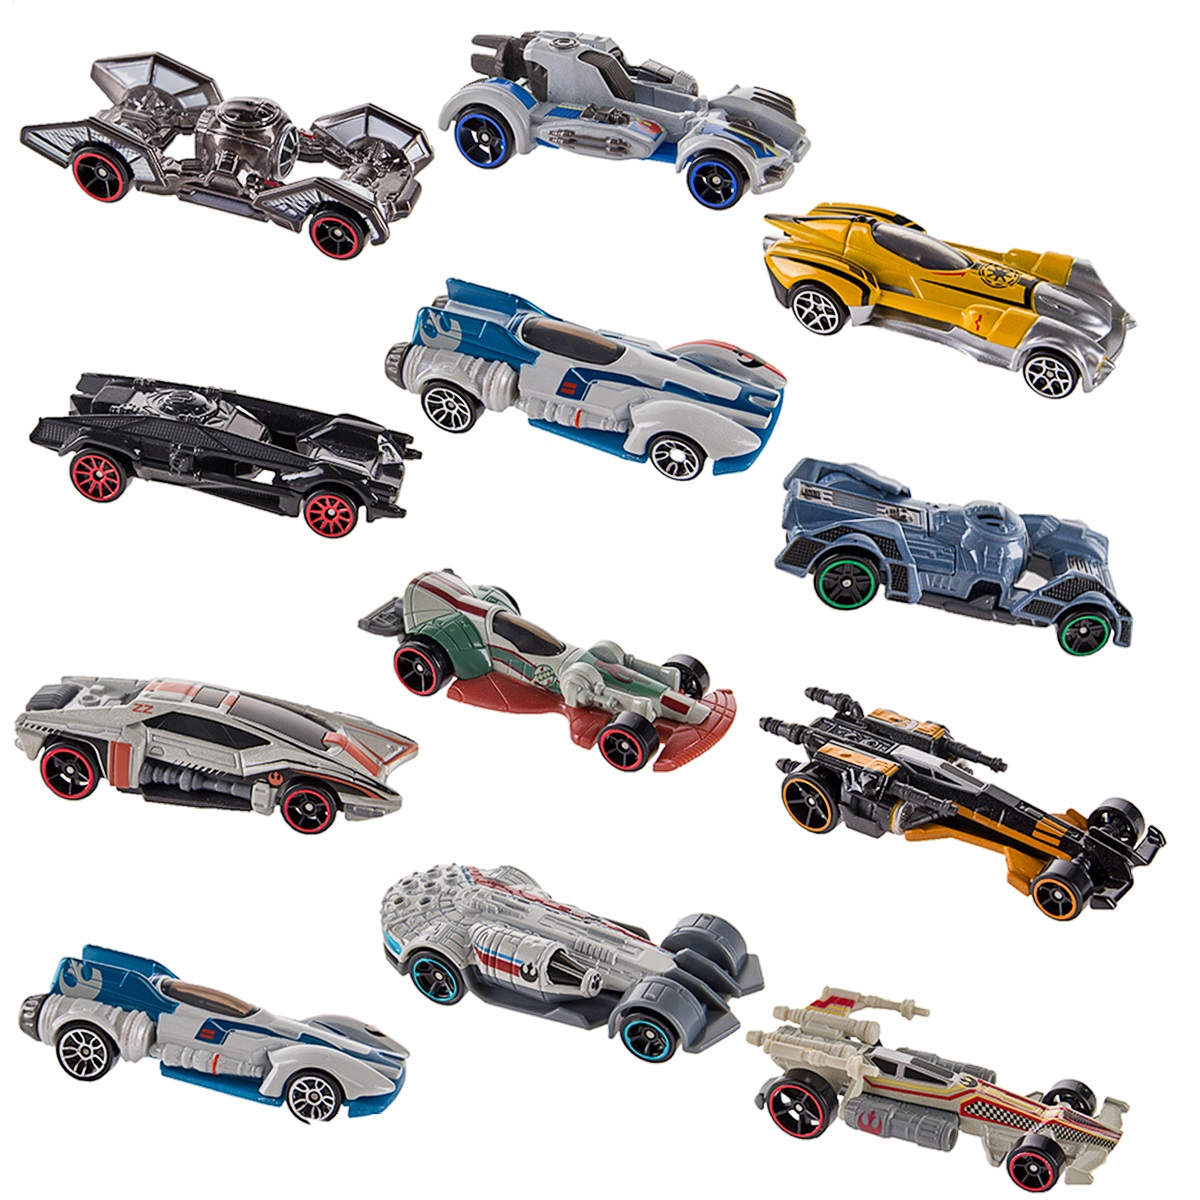 Hot Wheels (Set of 12) Disney Star Wars Carships Toys Set Starship Inspired Character Cars... by Hot Wheels